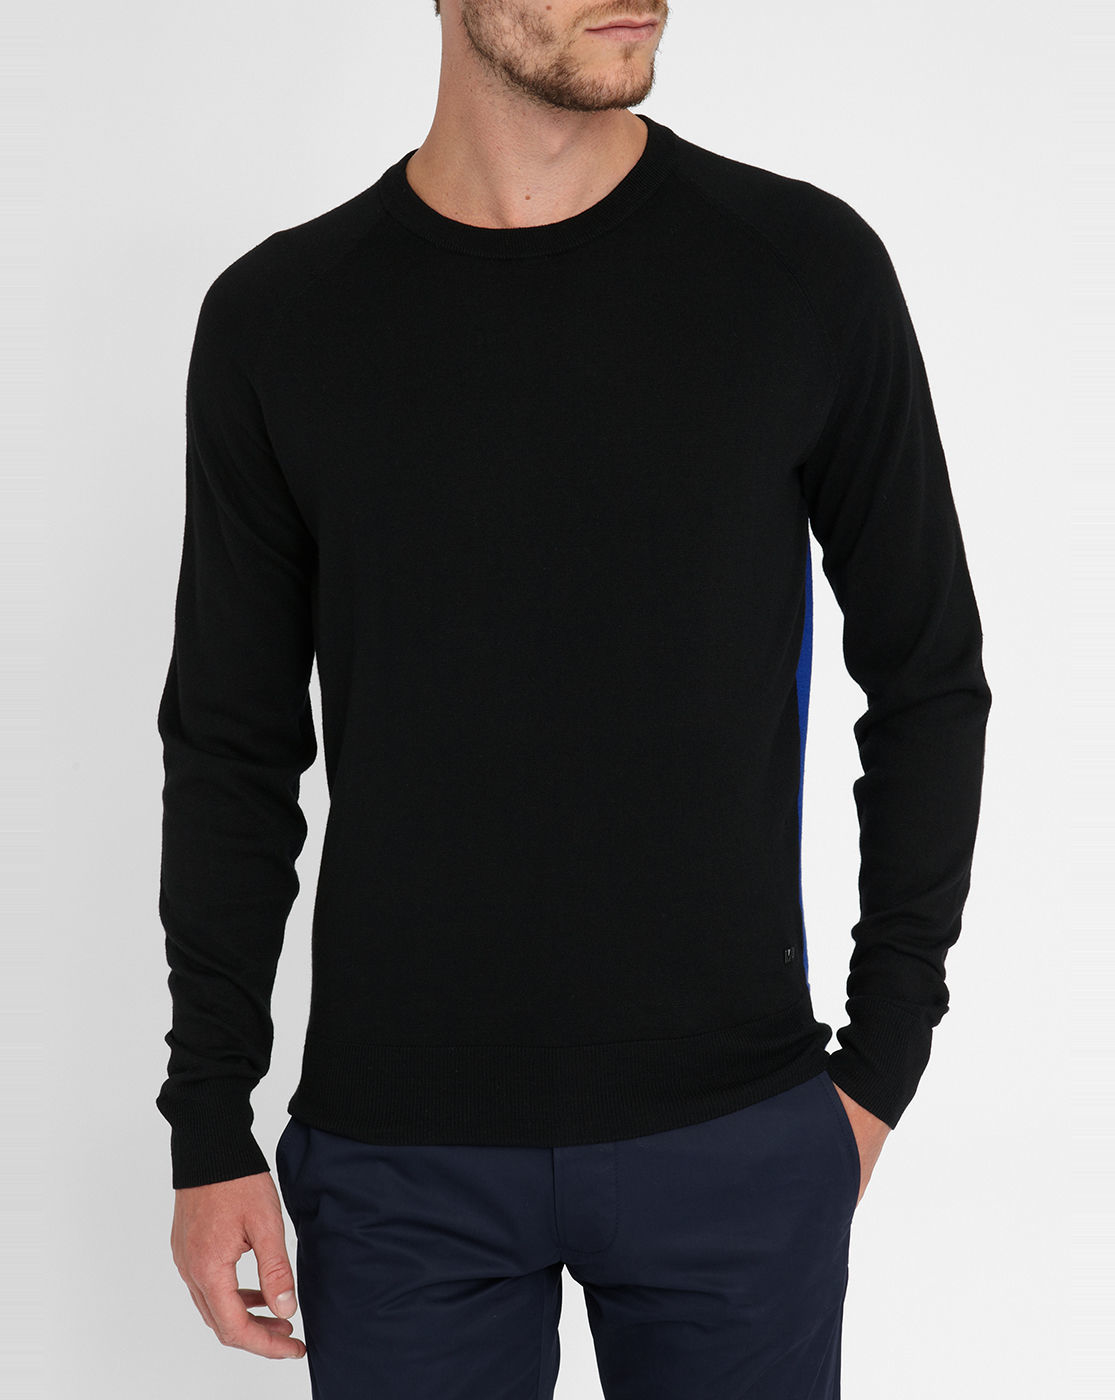 marc by marc jacobs black blue two tone round neck sweater in black for men lyst. Black Bedroom Furniture Sets. Home Design Ideas